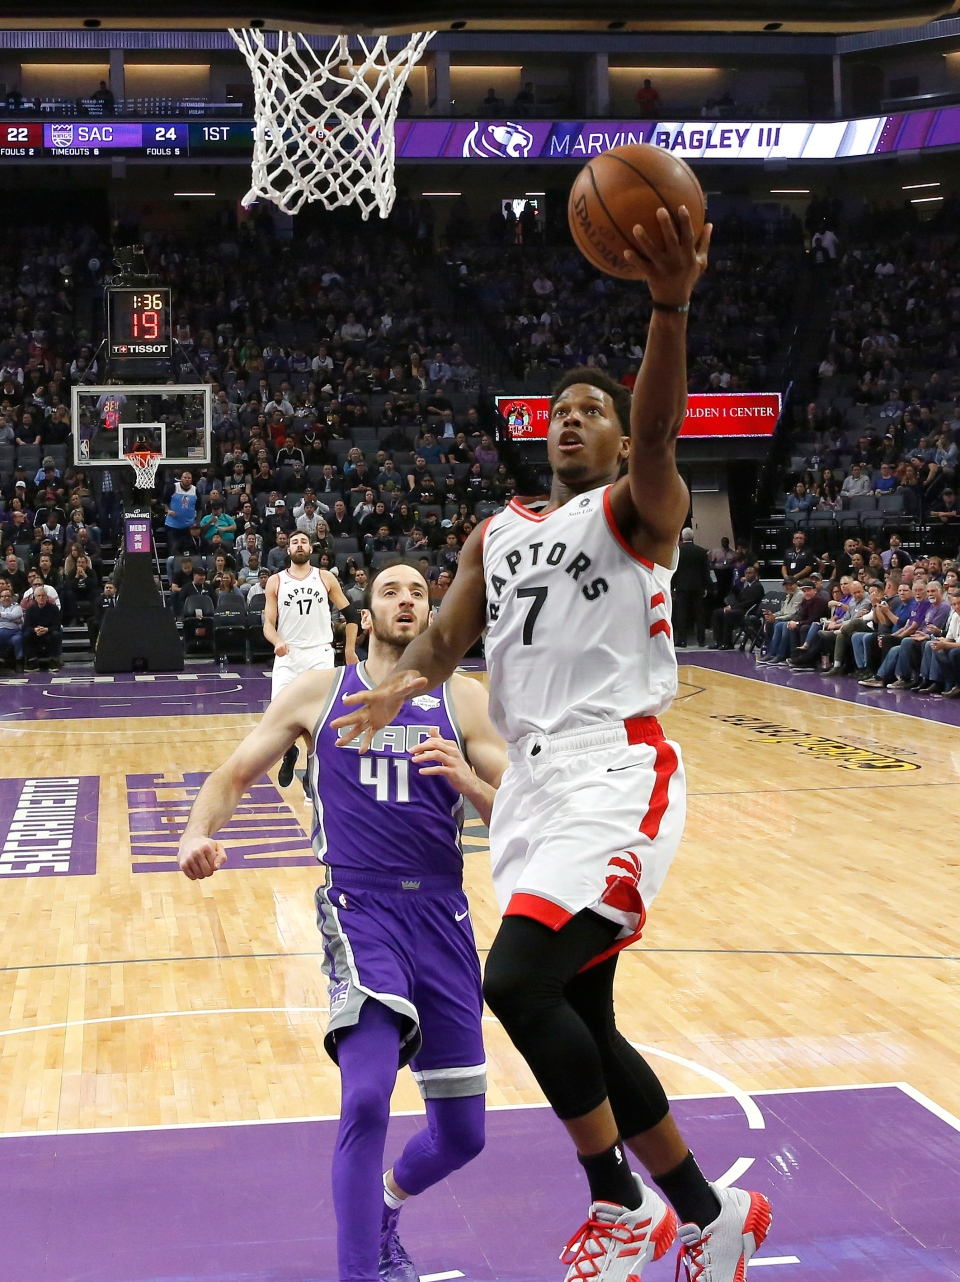 Toronto Raptors guard Kyle Lowry, right, goes to the basket as Sacramento Kings center Kosta Koufos, left, looks on during the first quarter of an NBA basketball game Wednesday, Nov. 7, 2018, in Sacramento, Calif. (AP Photo/Rich Pedroncelli)